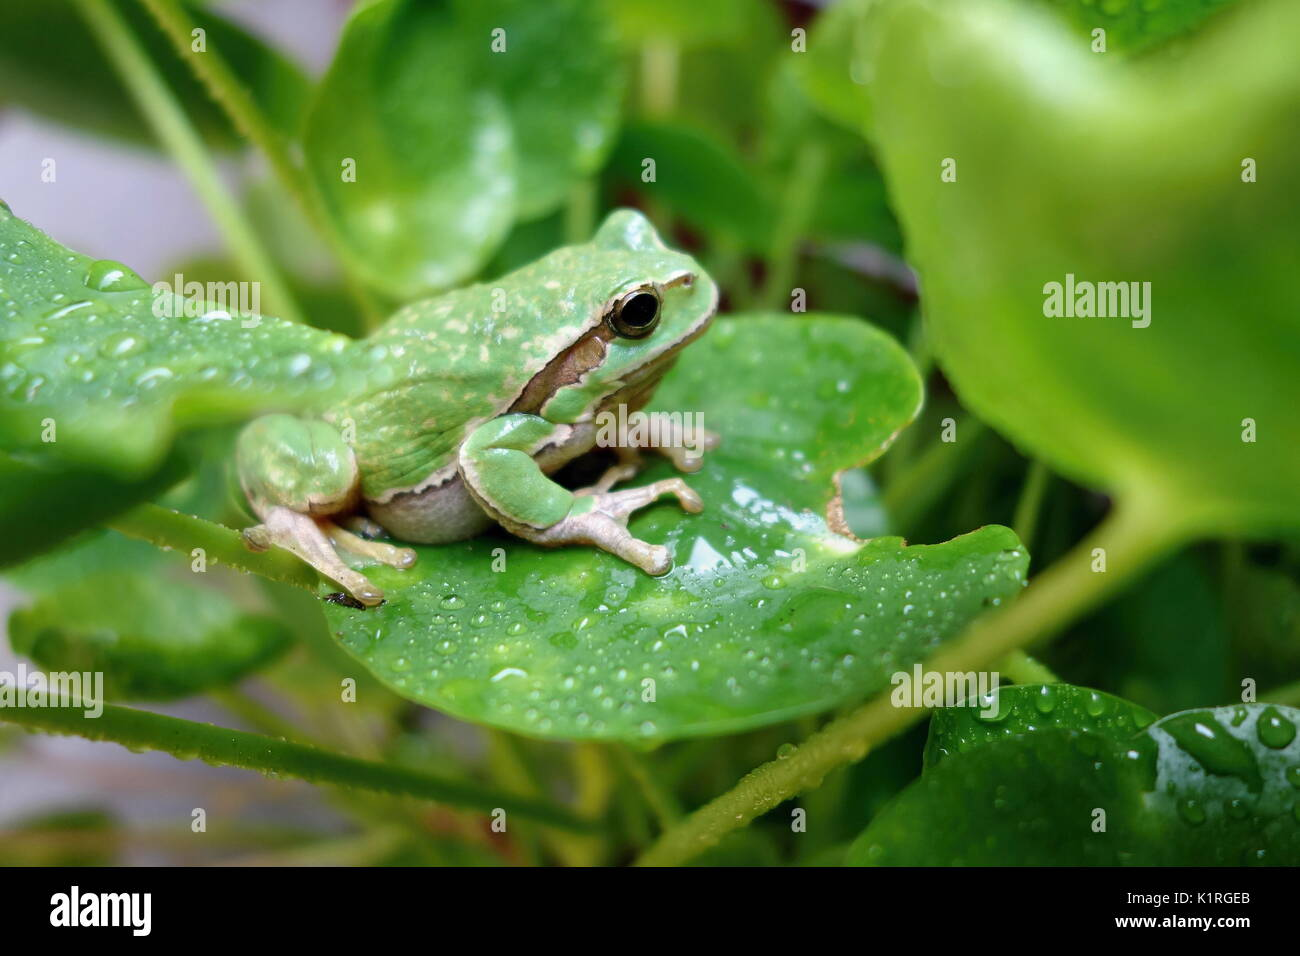 Nice green amphibian European tree frog, Hyla arborea, sitting on grass habitat. Stock Photo